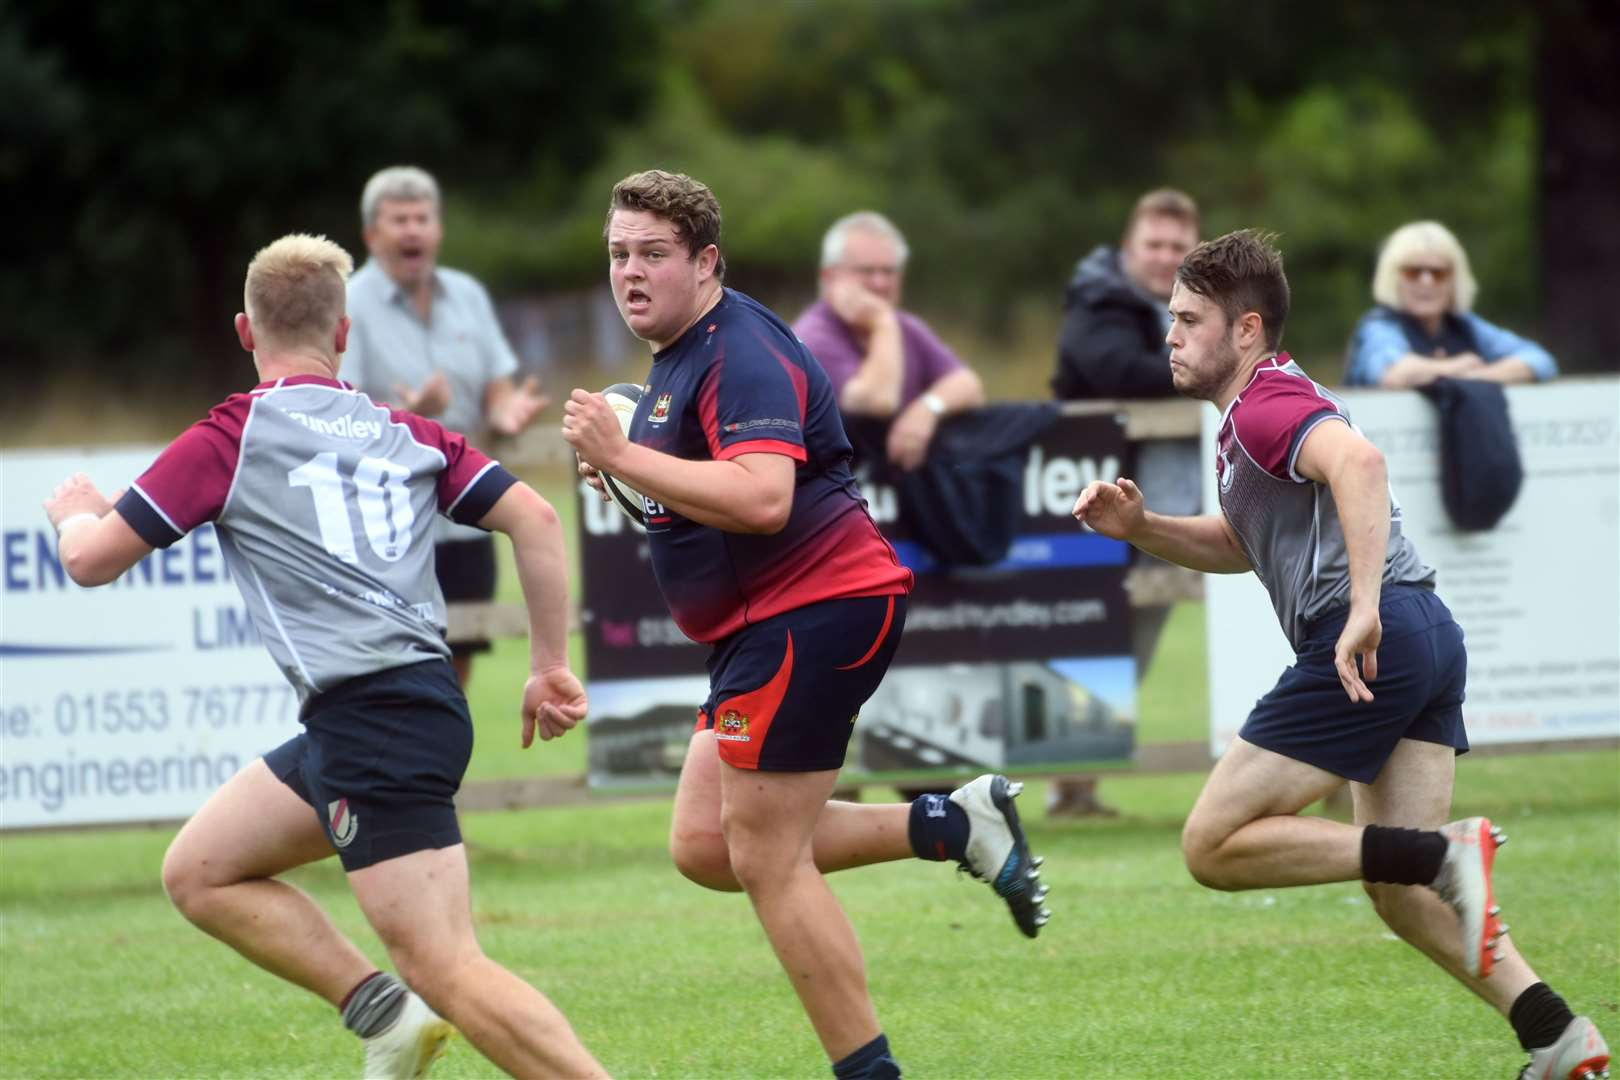 West Norfolk v Wisbech rugby friendly. (15991152)